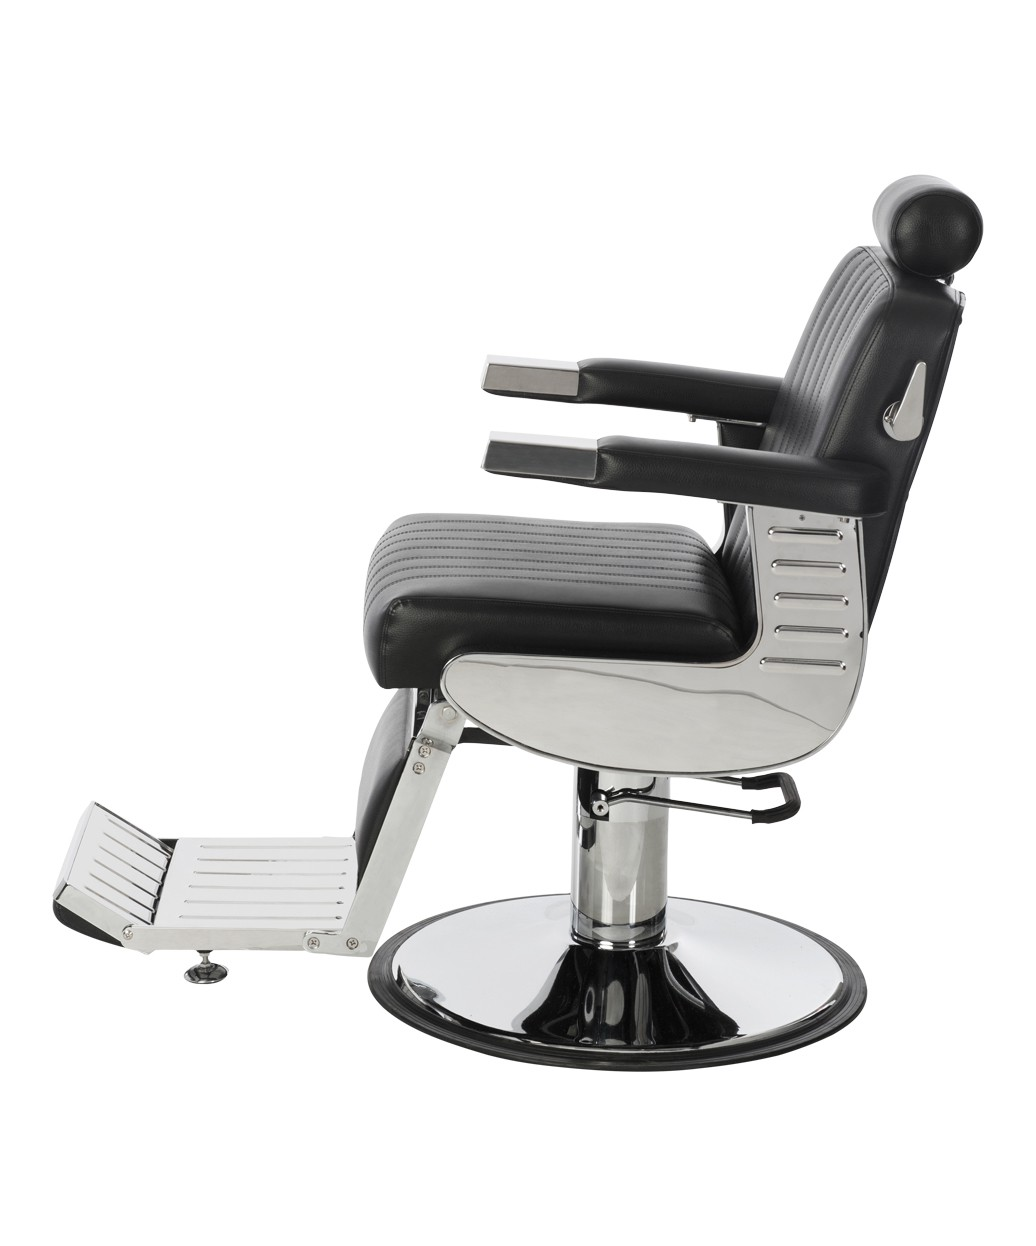 professional barber chair reviews rubber feet caps empire